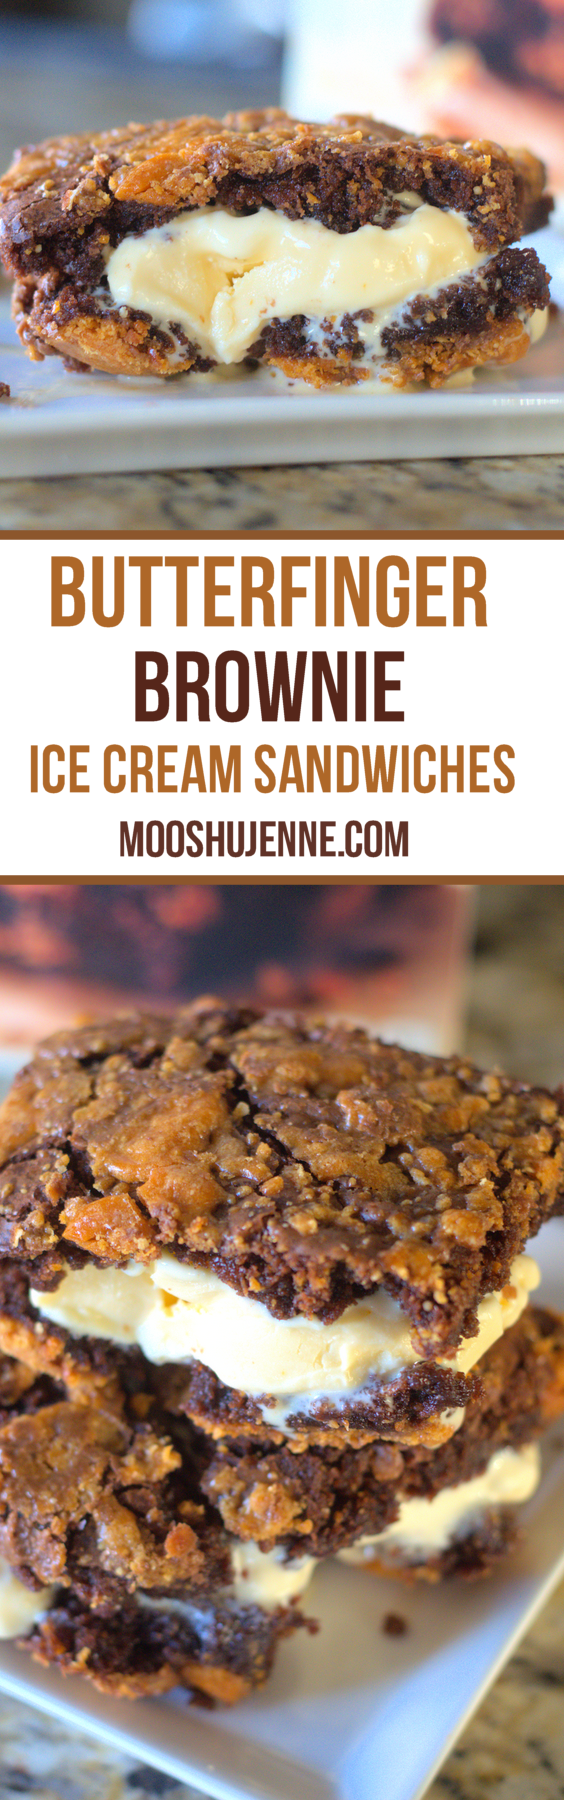 Butterfinger Brownie Ice Cream Sandwiches made with brownies and vanilla ice cream.